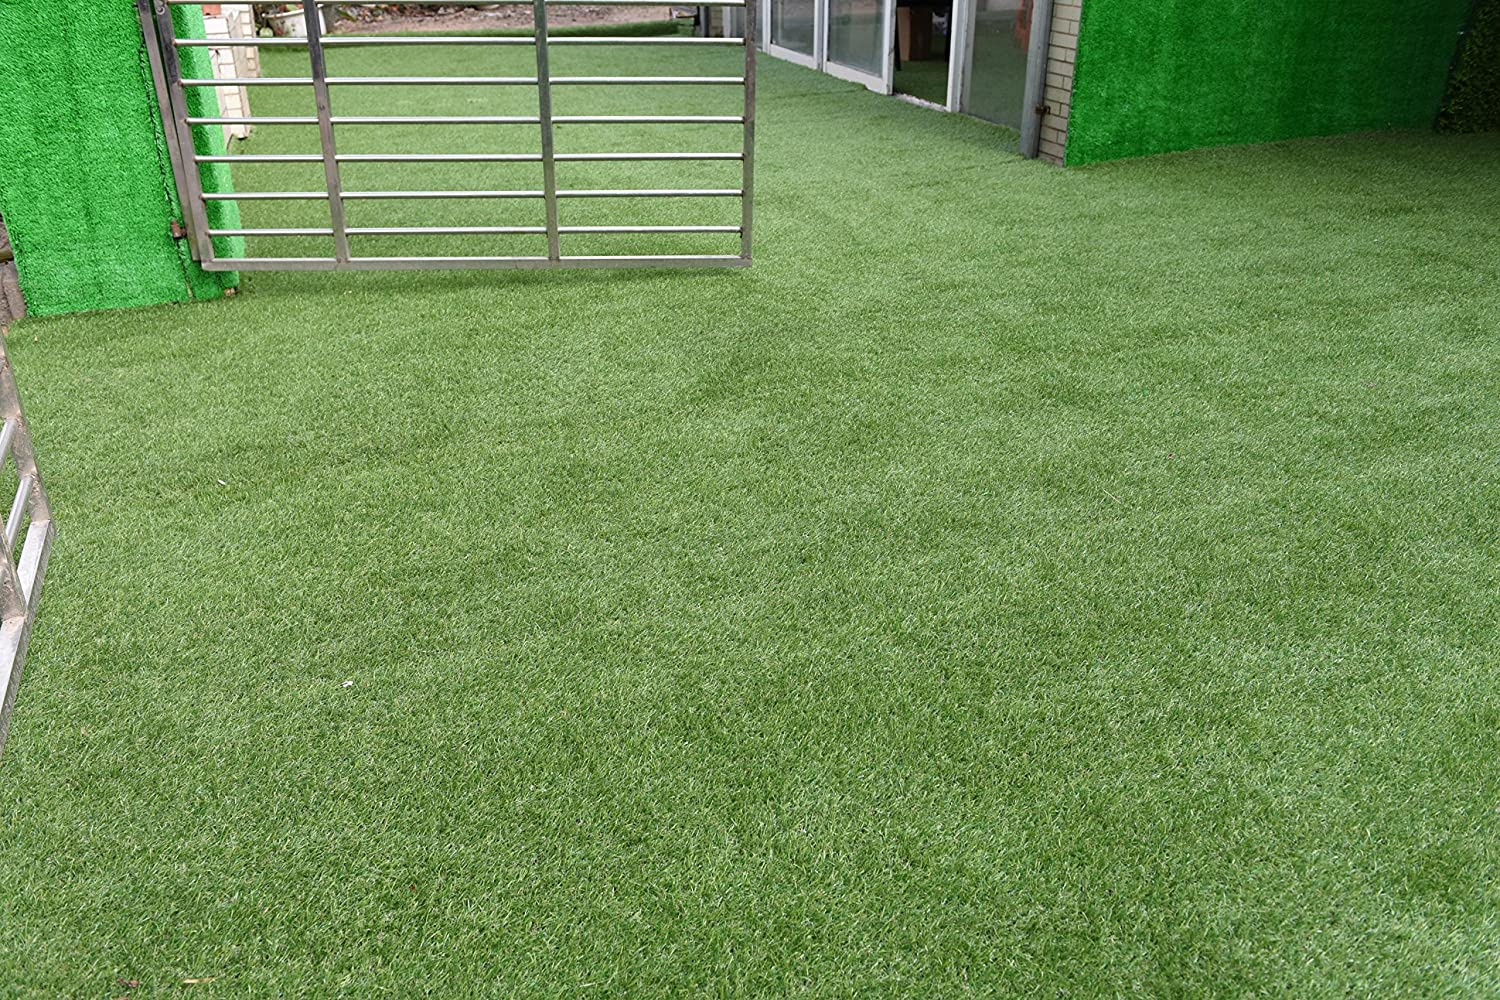 fake grass indoor. Amazon.com: RoundLove Artificial Turf Lawn Fake Grass Indoor Outdoor Landscape Pet Dog Area (40X28 In): Supplies O